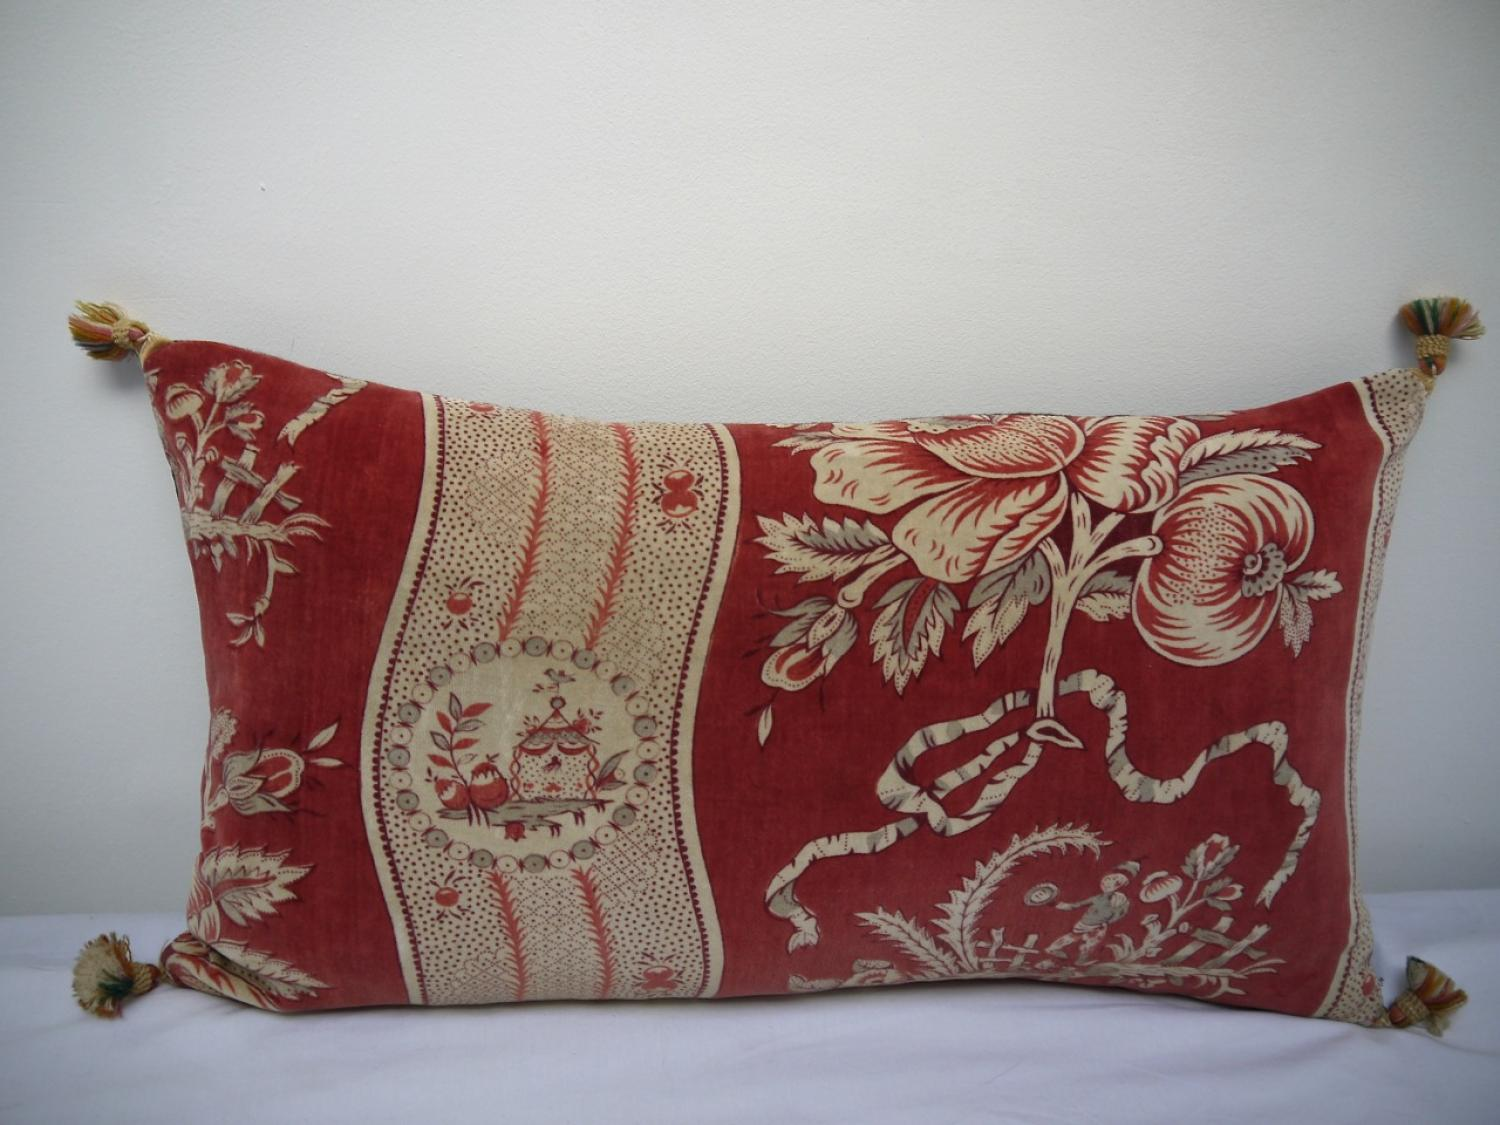 19th century French Printed Velvet Cushion